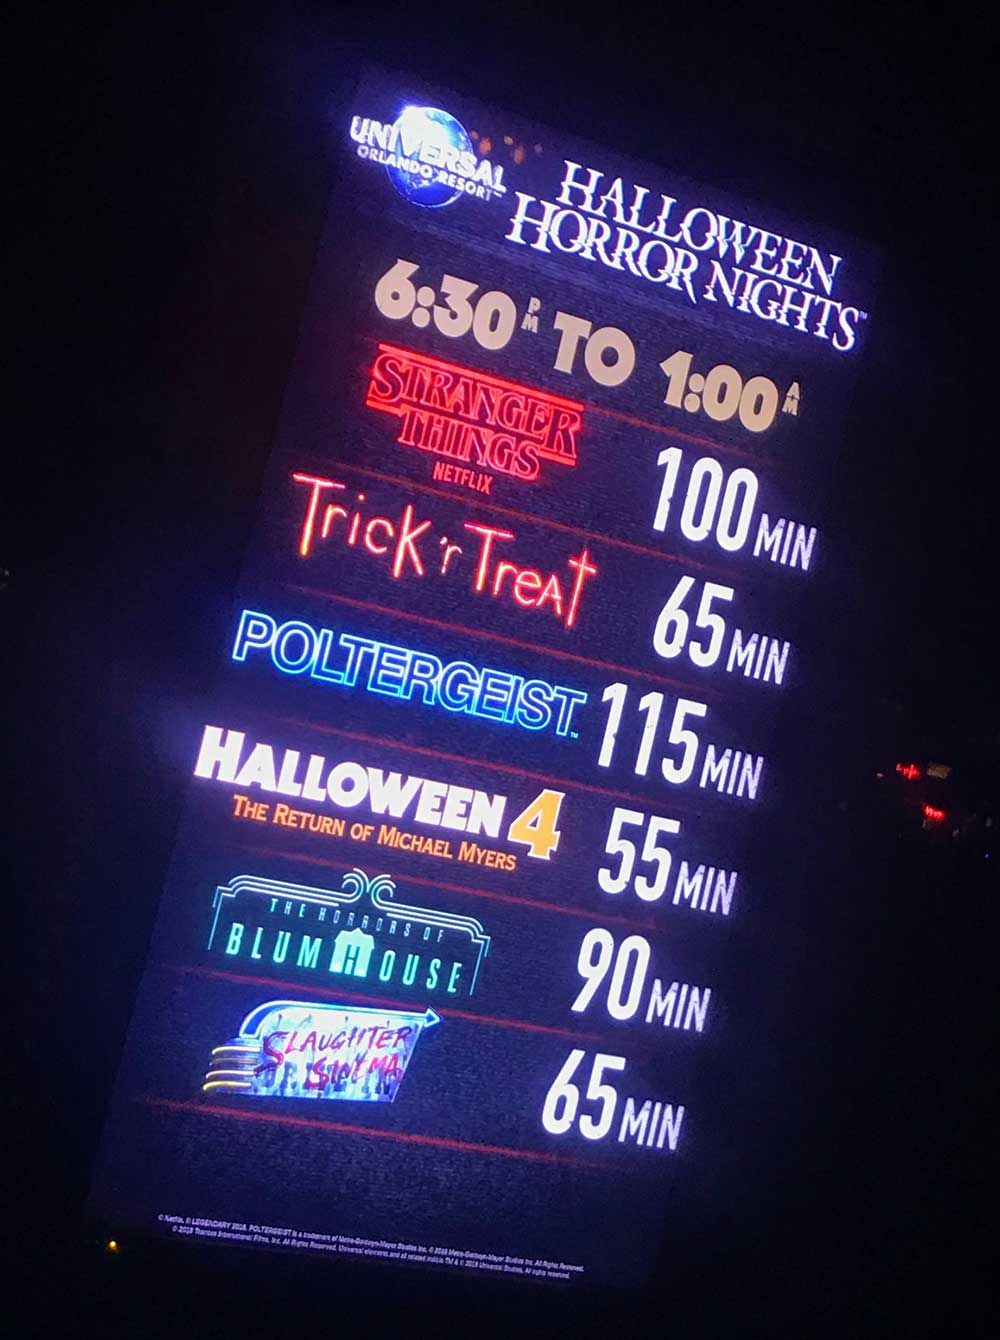 Halloween Horror Nights Orlando 2019 - Wait Times